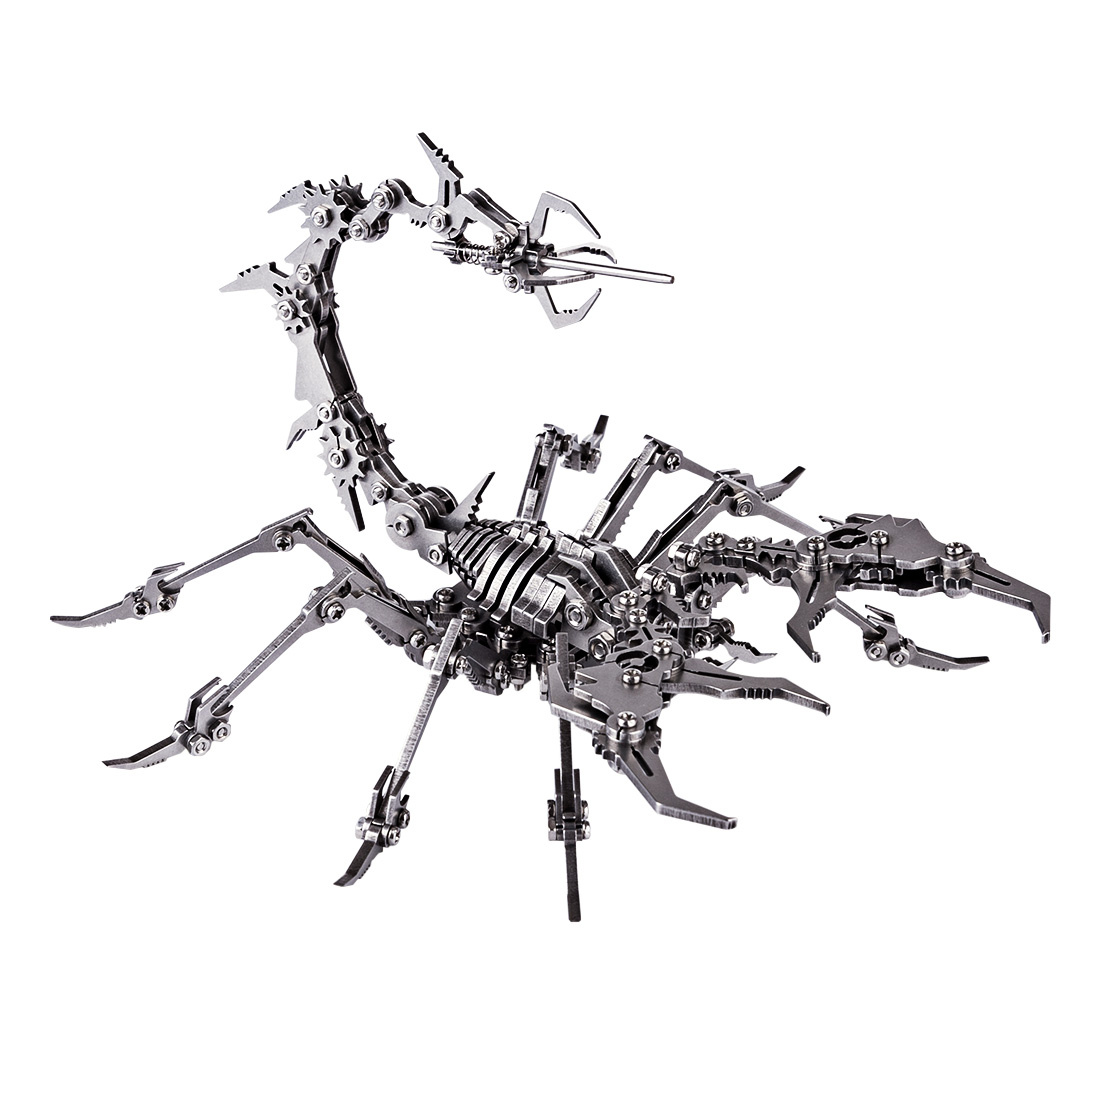 NFSTRIKE Scorpion King 3D Stainless Steel DIY Assembled Detachable Model Puzzle Ornaments Model Building Kits Kids Men Gift